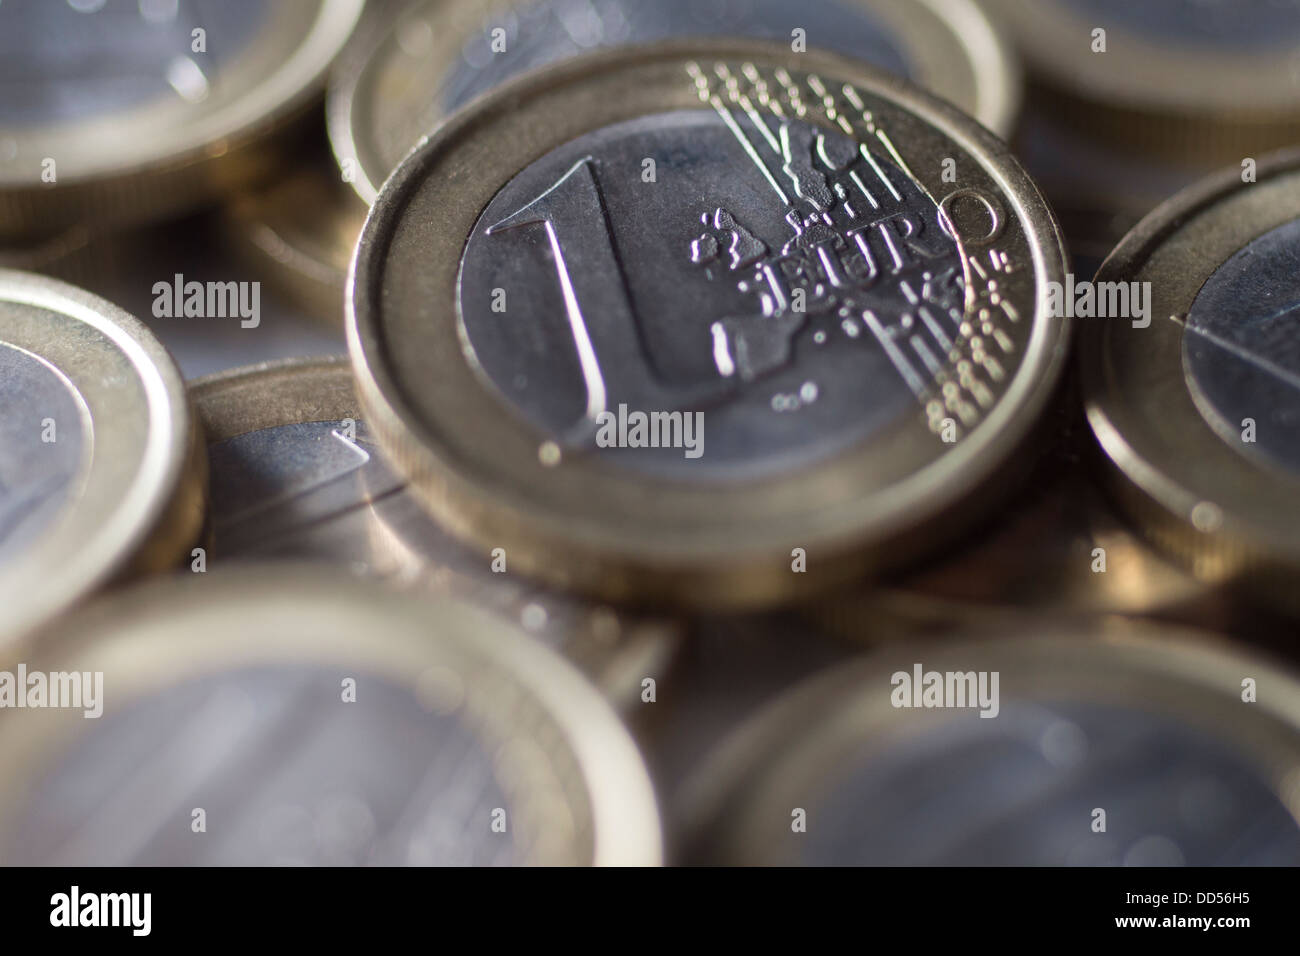 Close up of 1 Euro coins - Stock Image